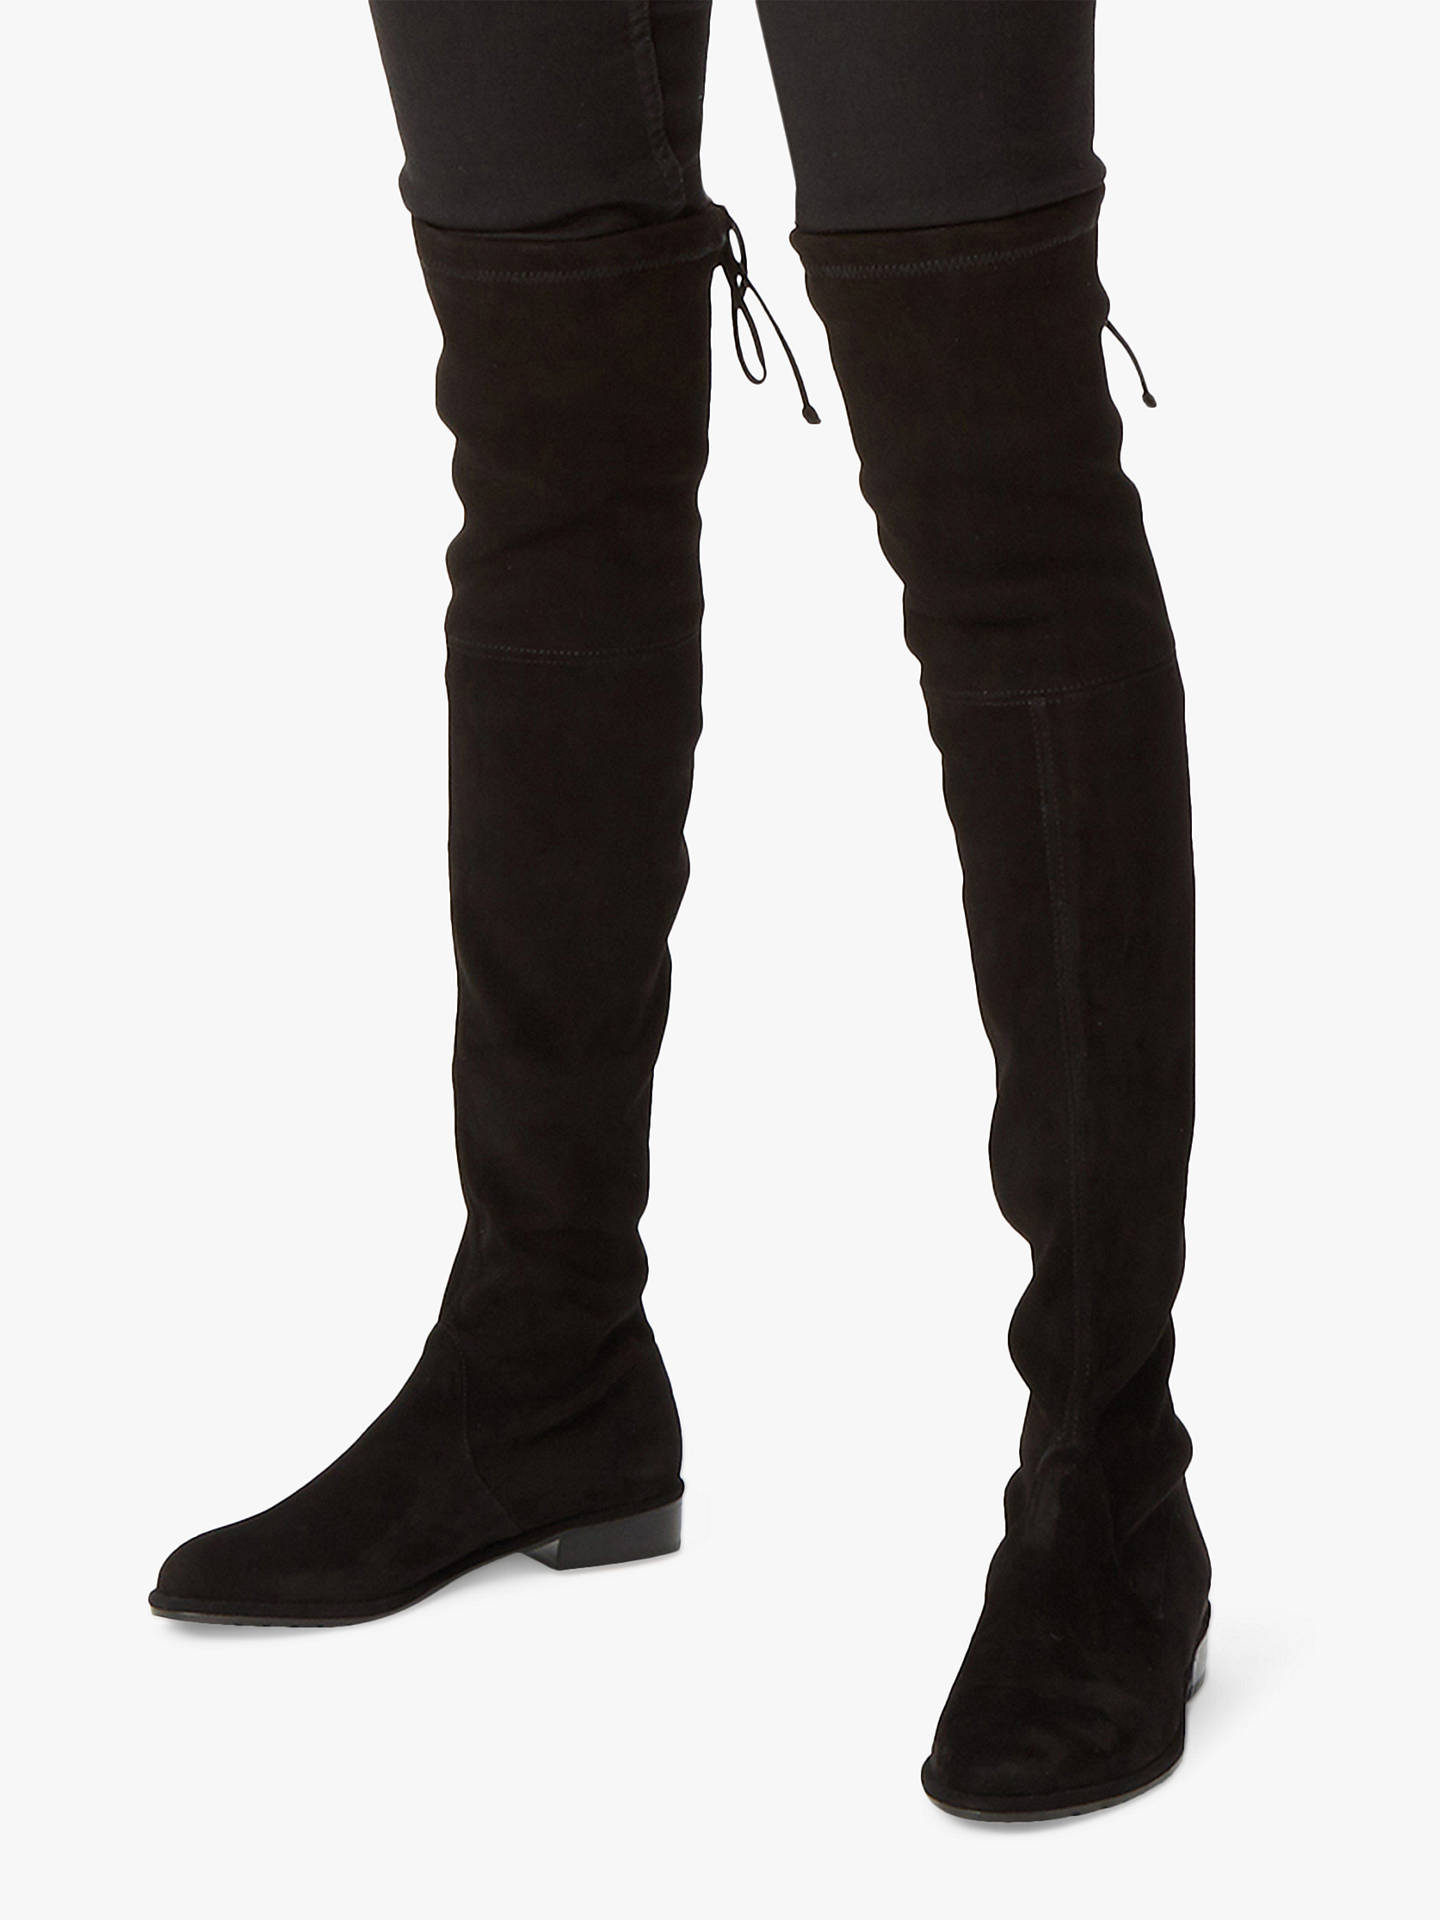 a2da0a25fca ... Buy Stuart Weitzman Lowland Over The Knee Boots